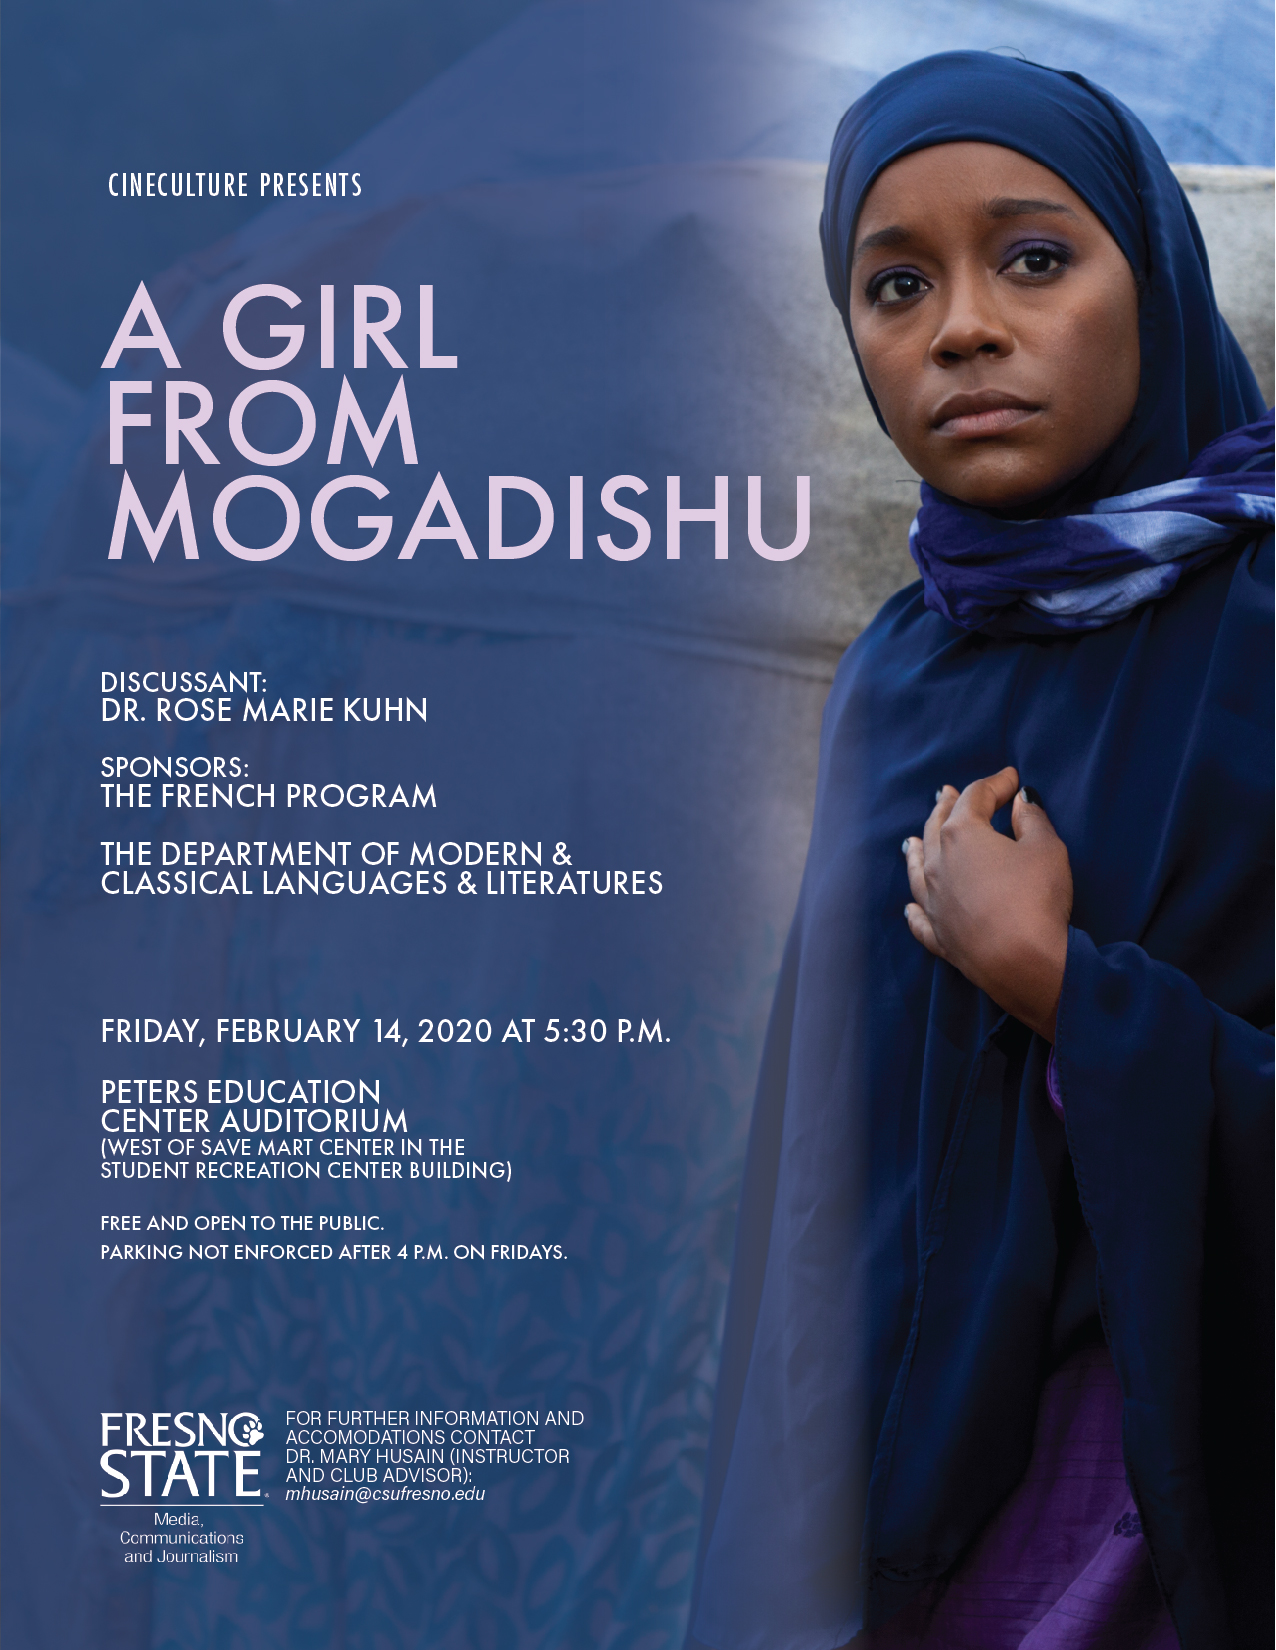 a girl from mogadishu_SCREEN_REVISED